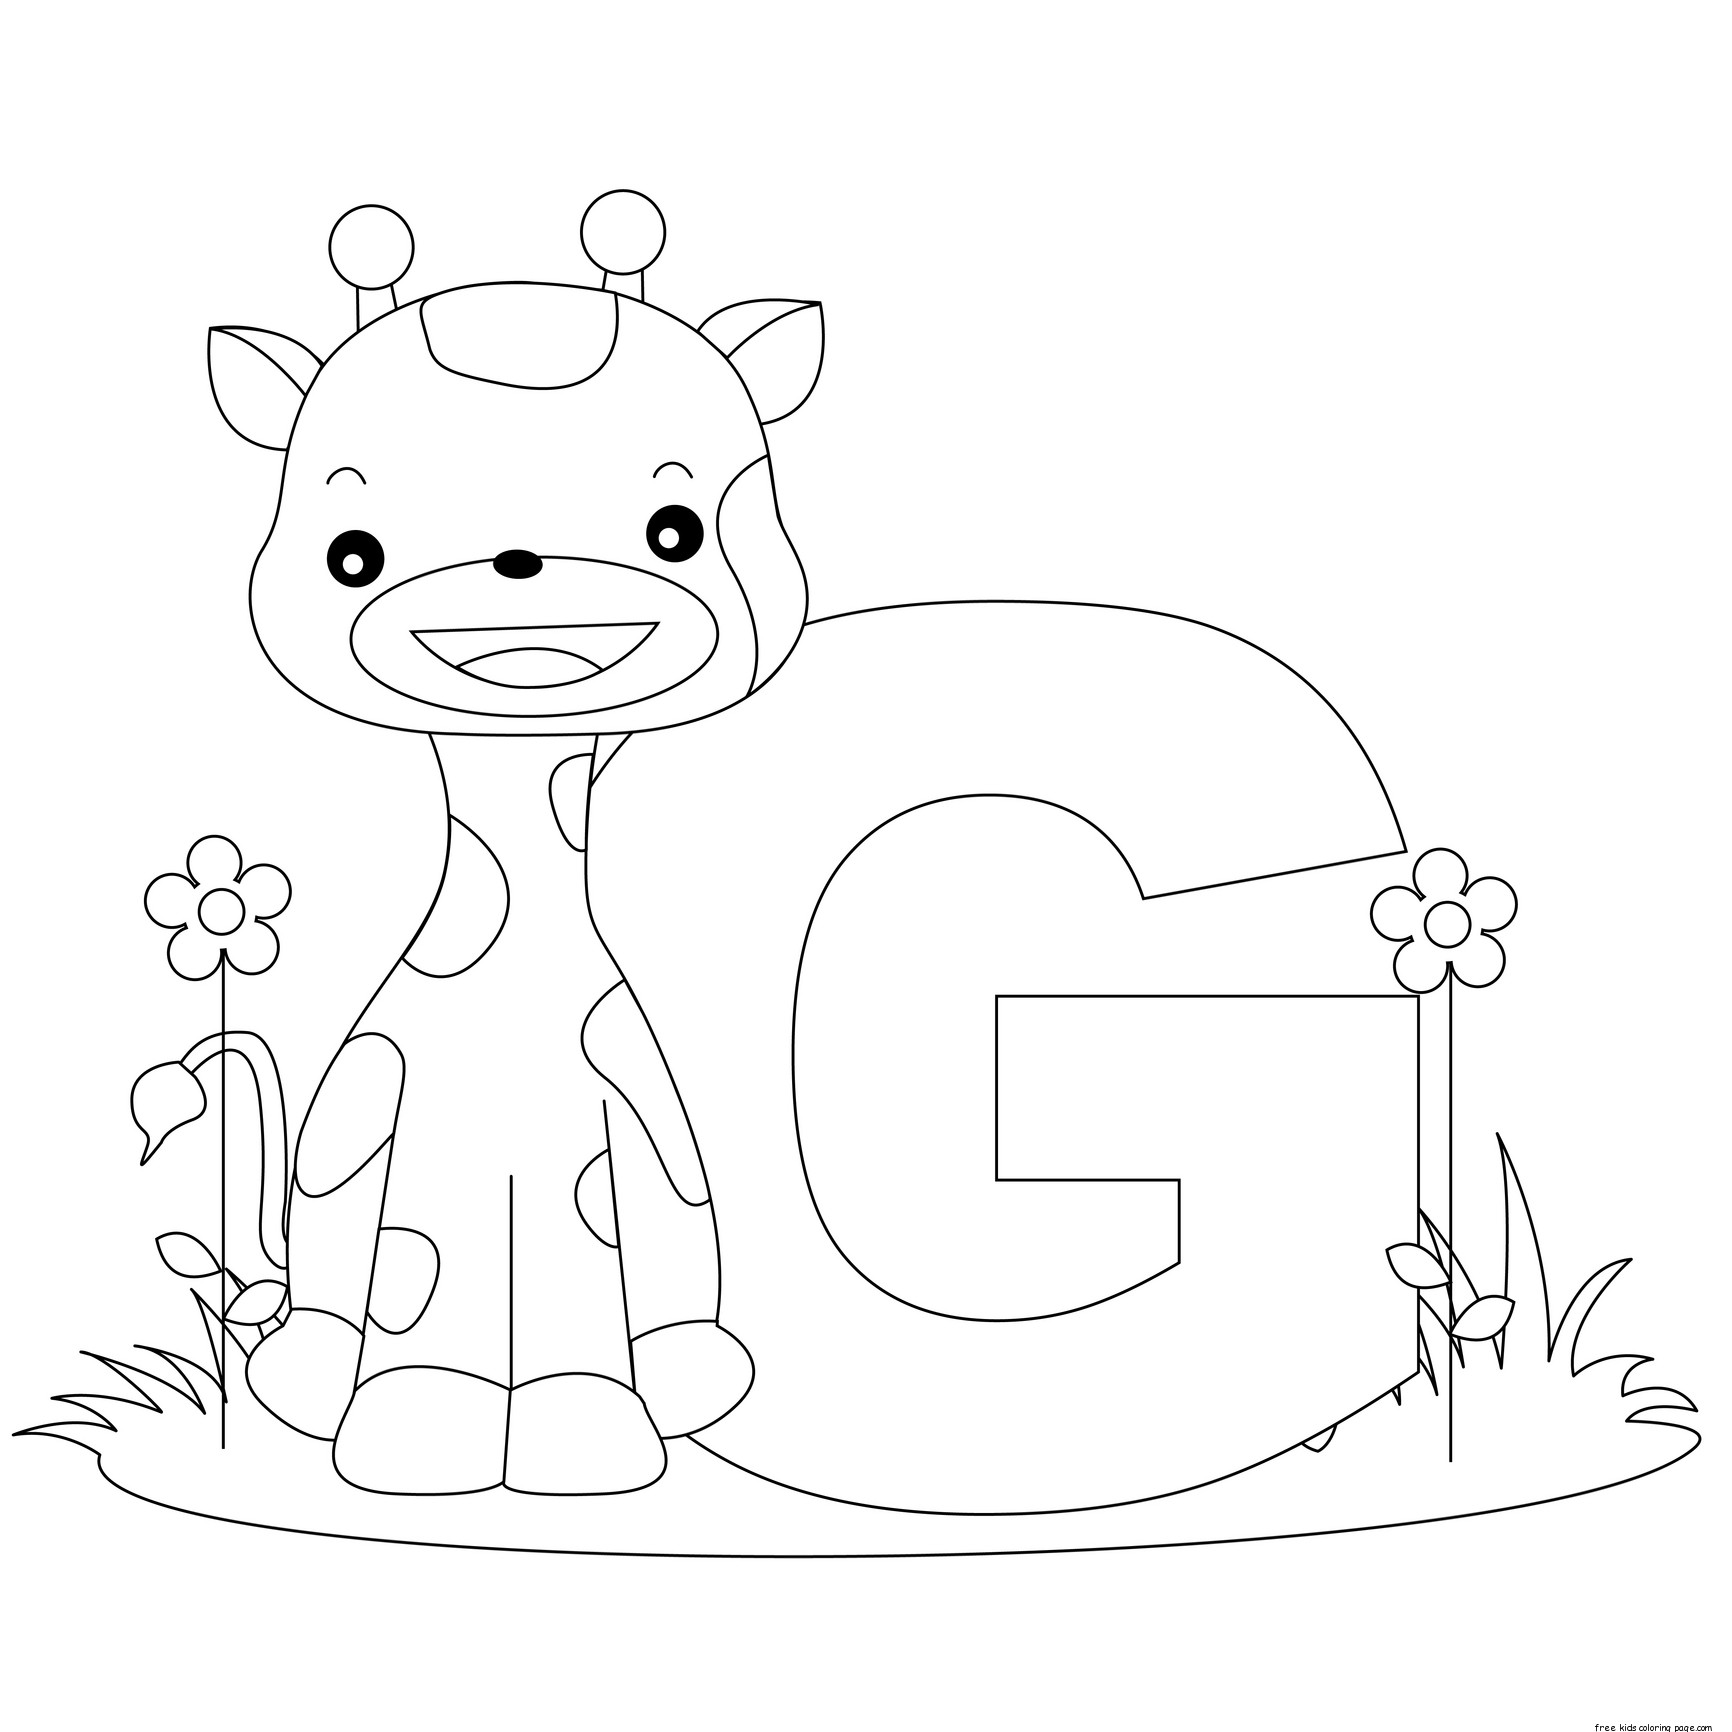 Alphabet letter g for preschool activities worksheetsfree for Free alphabet coloring pages for toddlers